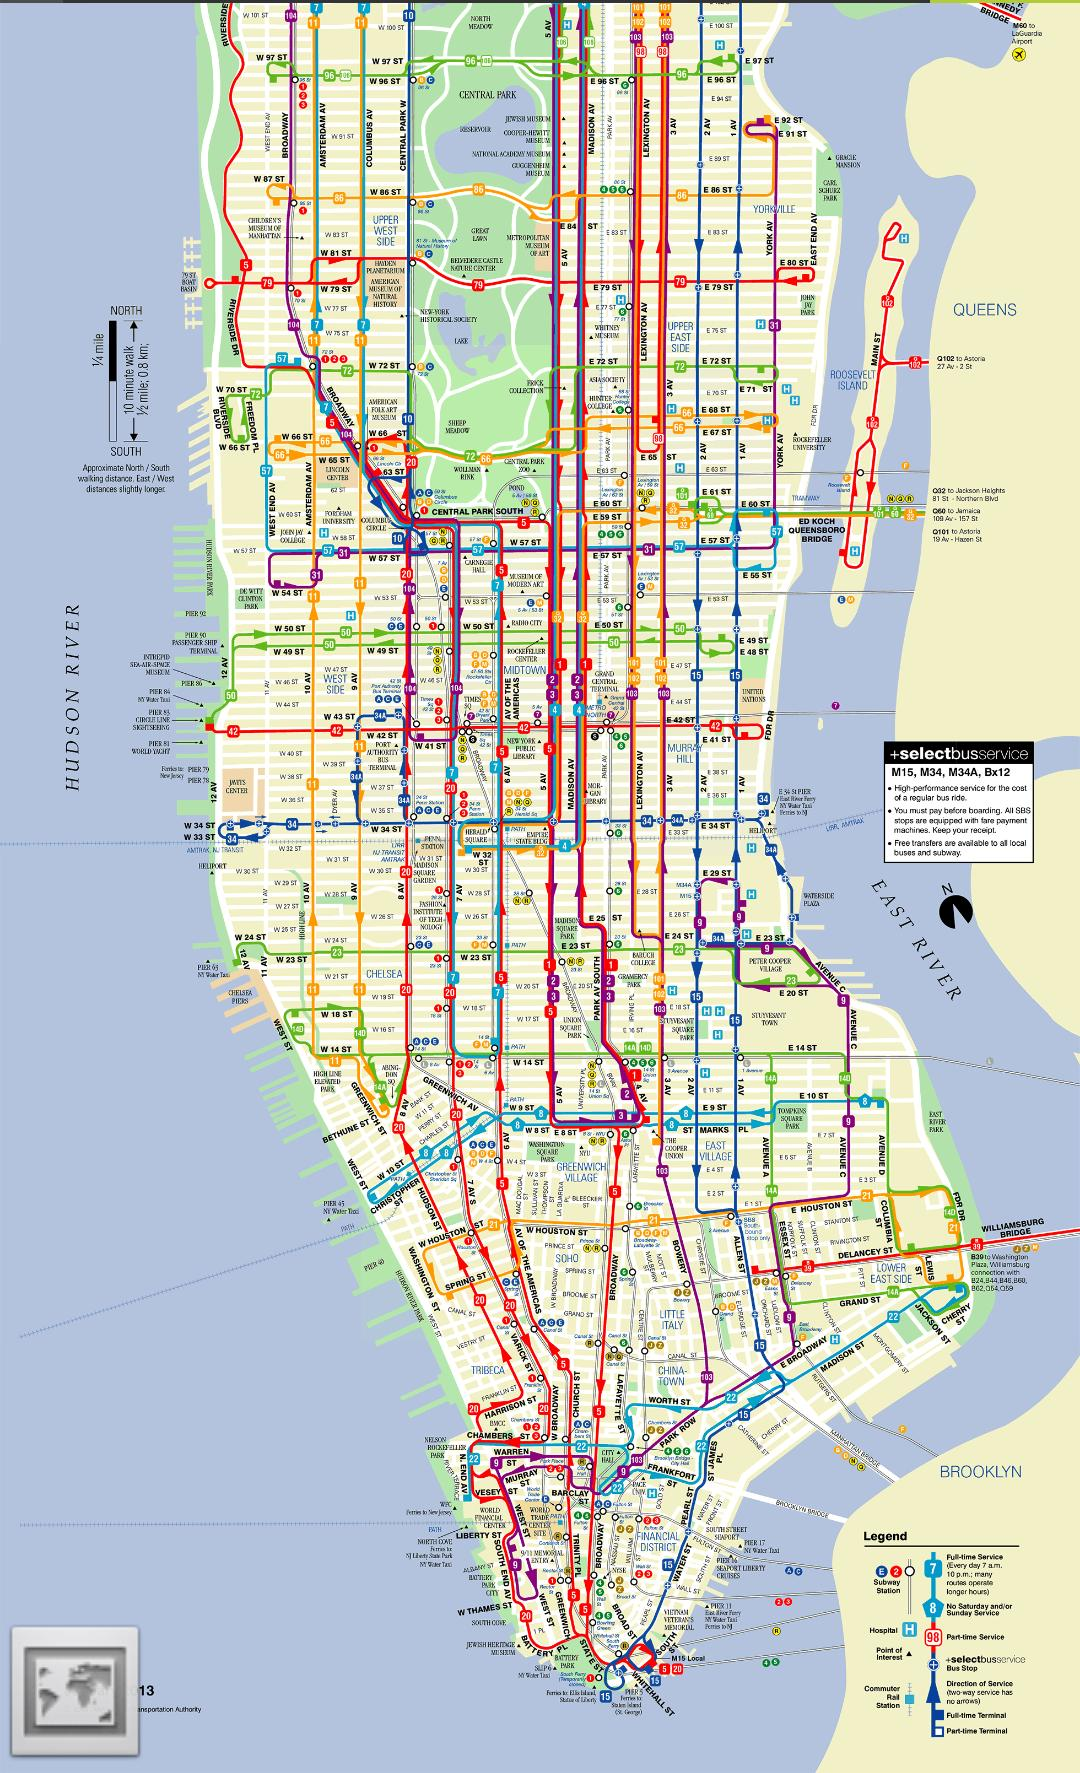 Download New York Subway Map.New York Subway Bus Maps For Android Apk Download